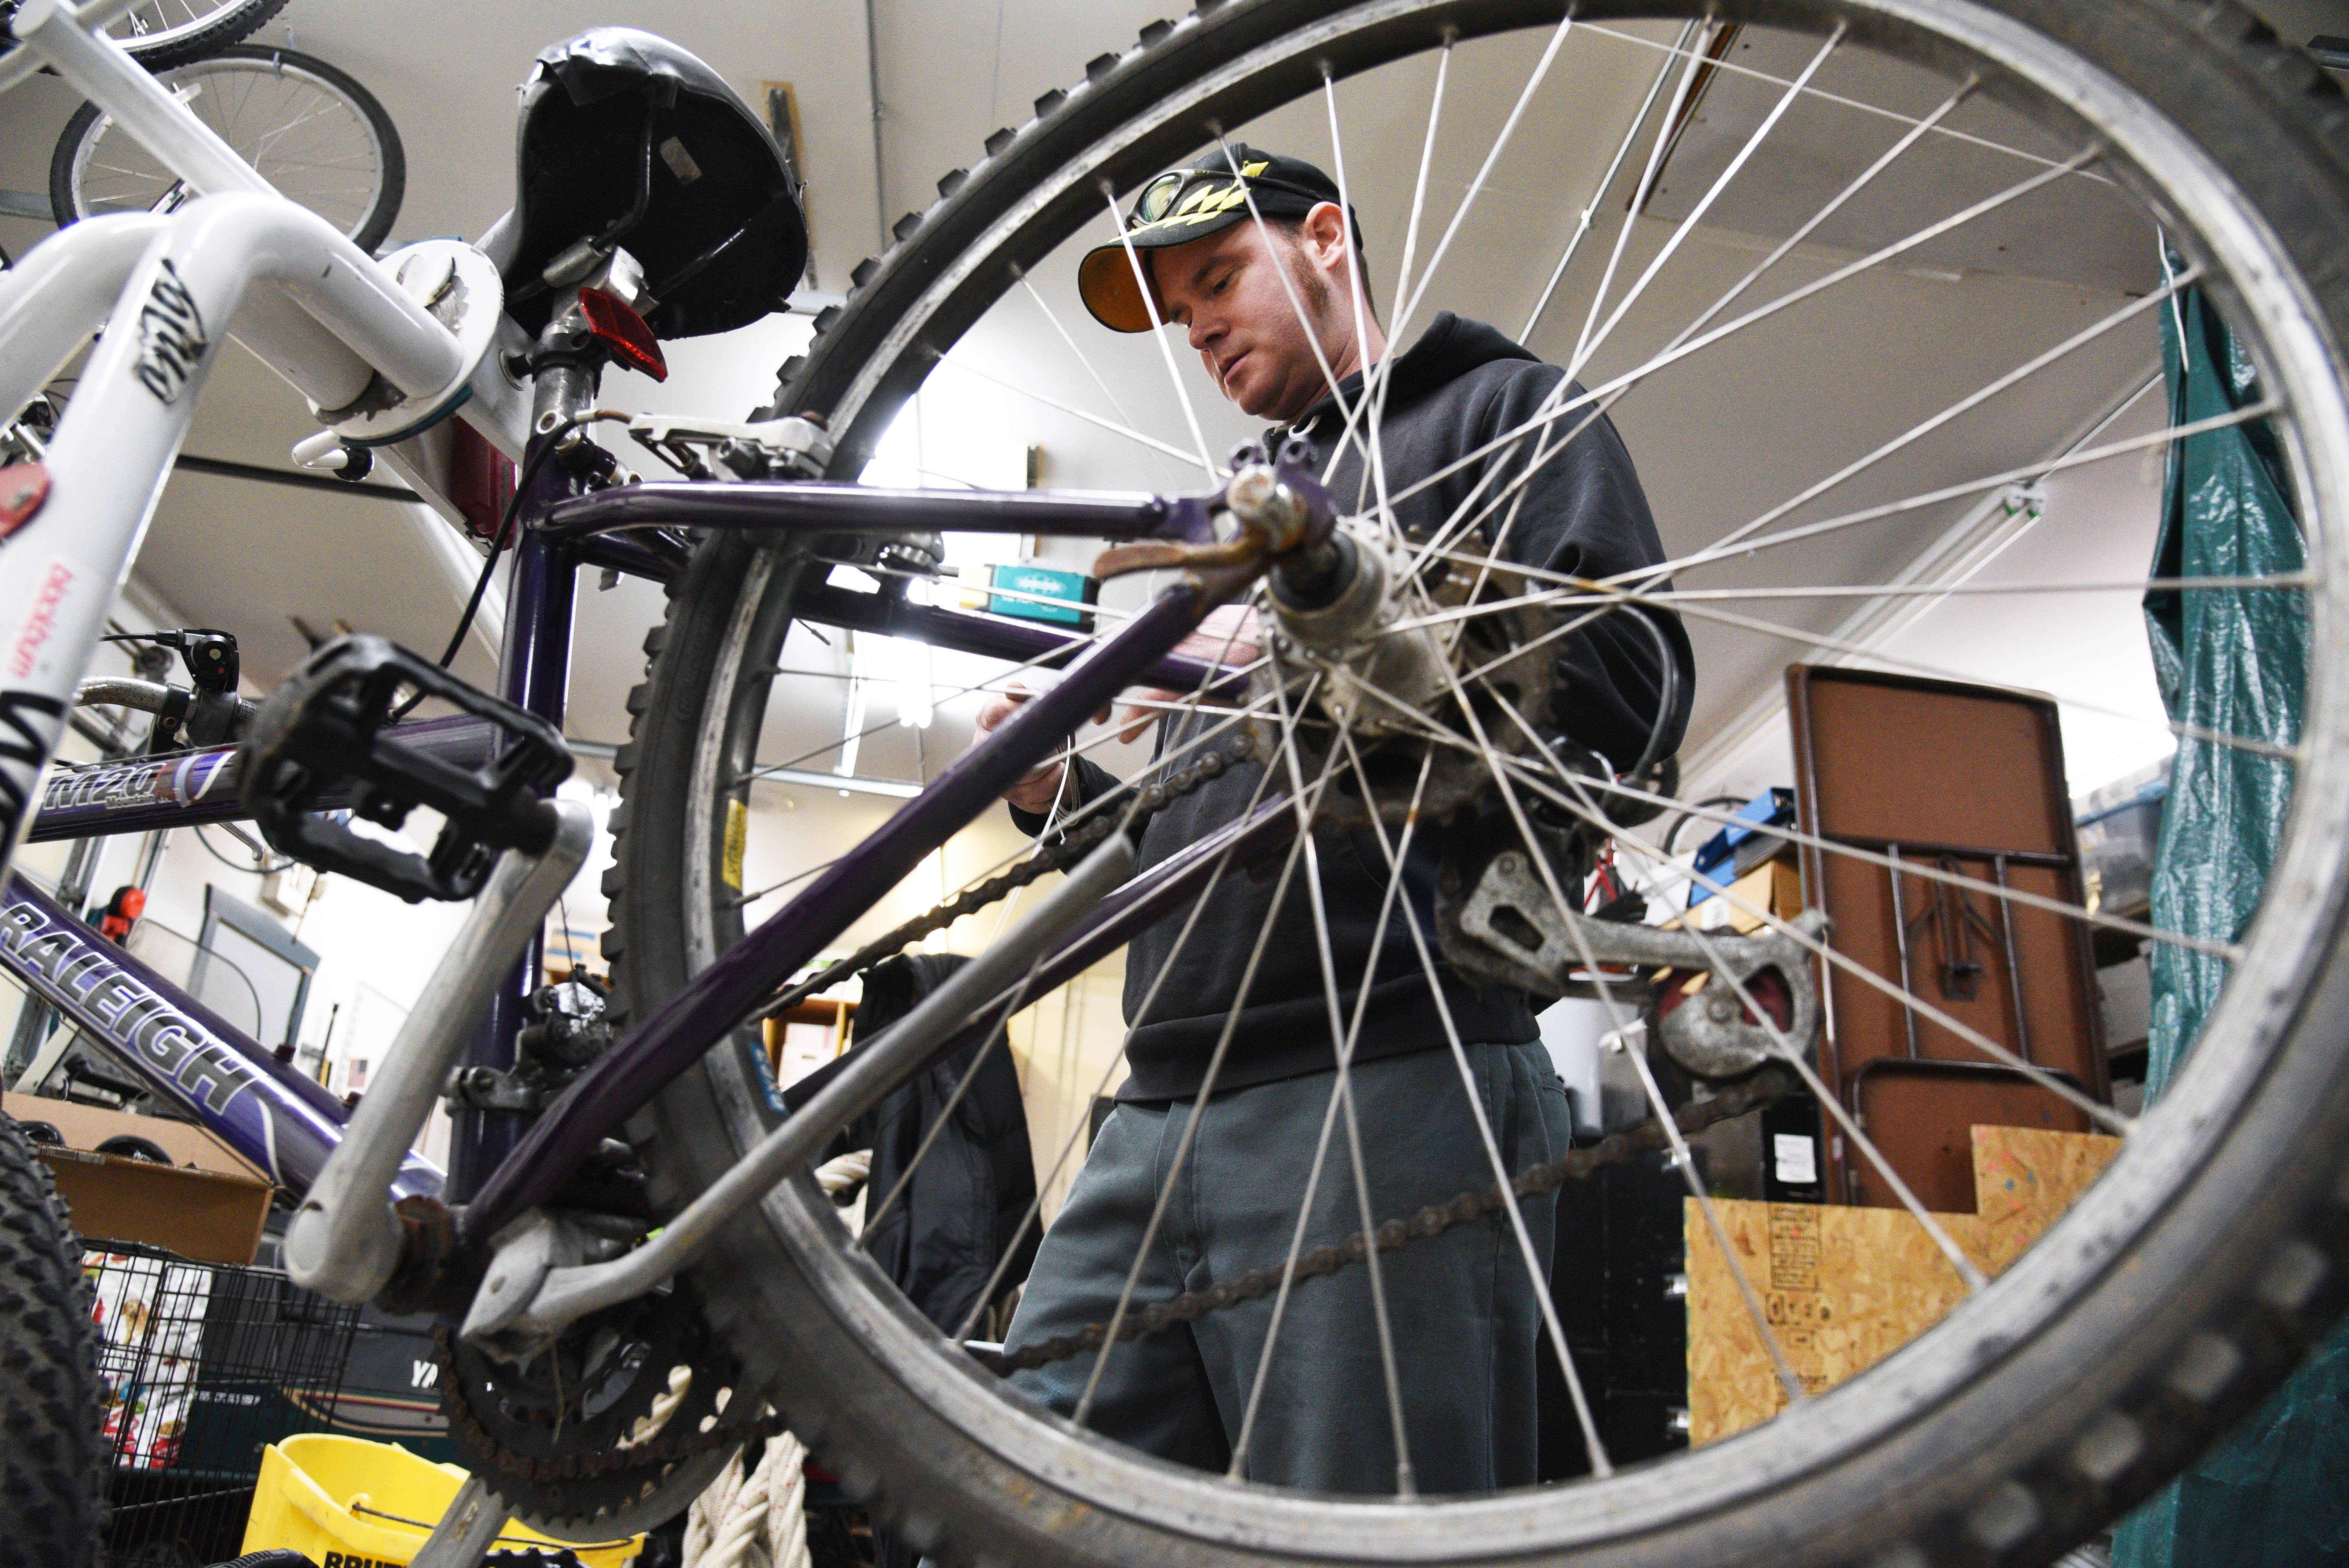 Patrick Tracy of Round Lake spends part of his off day Wednesday fixing bikes at the Round Lake Park Police Department. They'll be donated to people in need in the community.